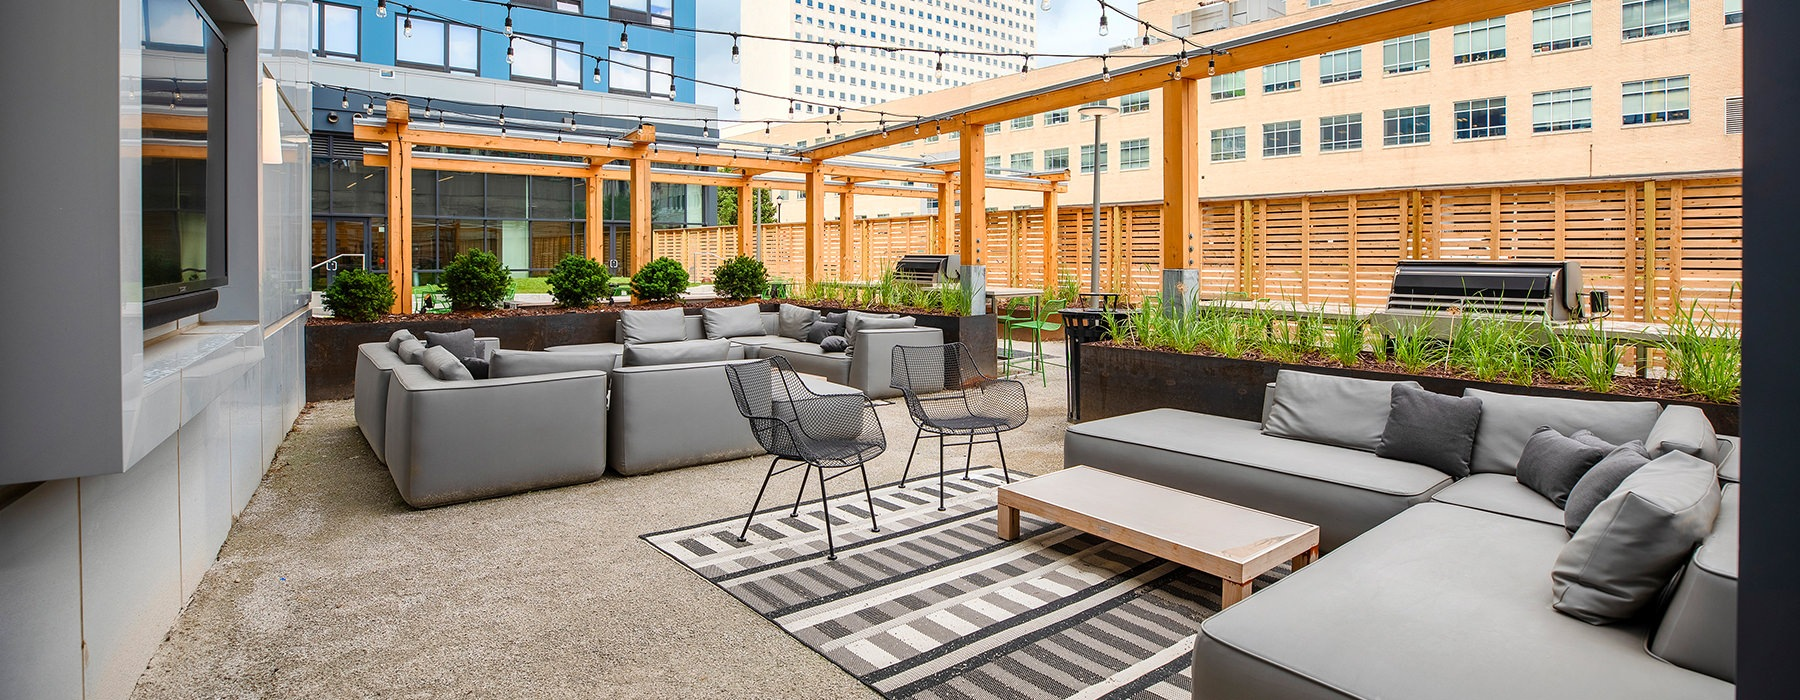 Outdoor Community Space with lounge seating